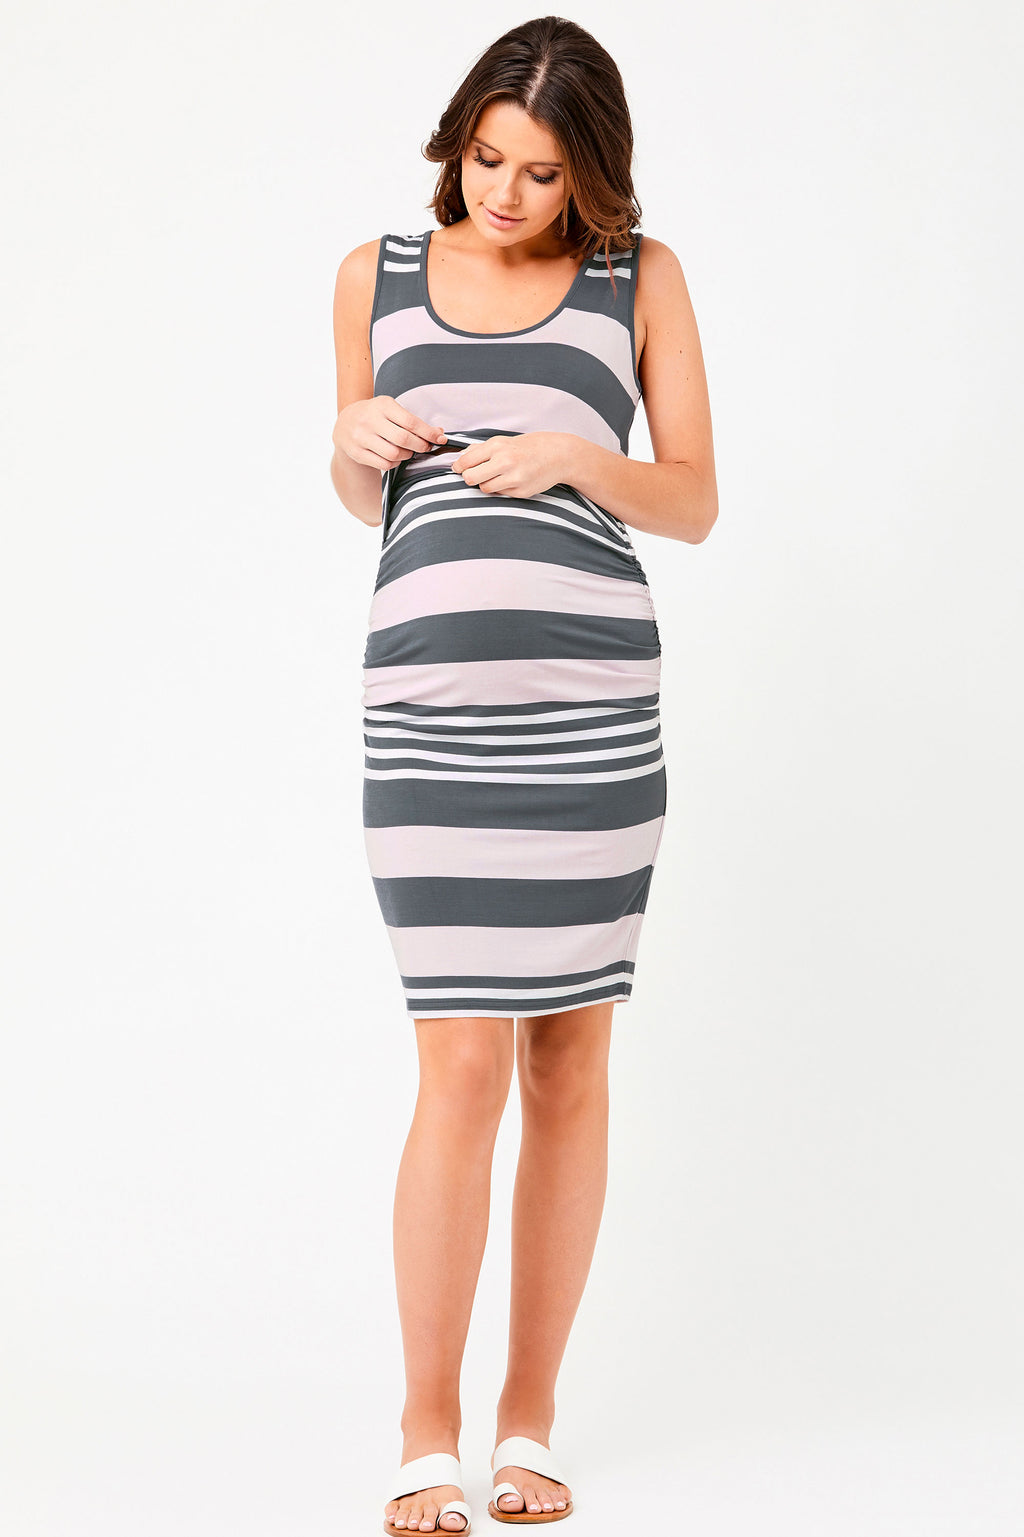 Ripe Georgie Charcoal Stripe Maternity Nursing Dress - Seven Women Maternity